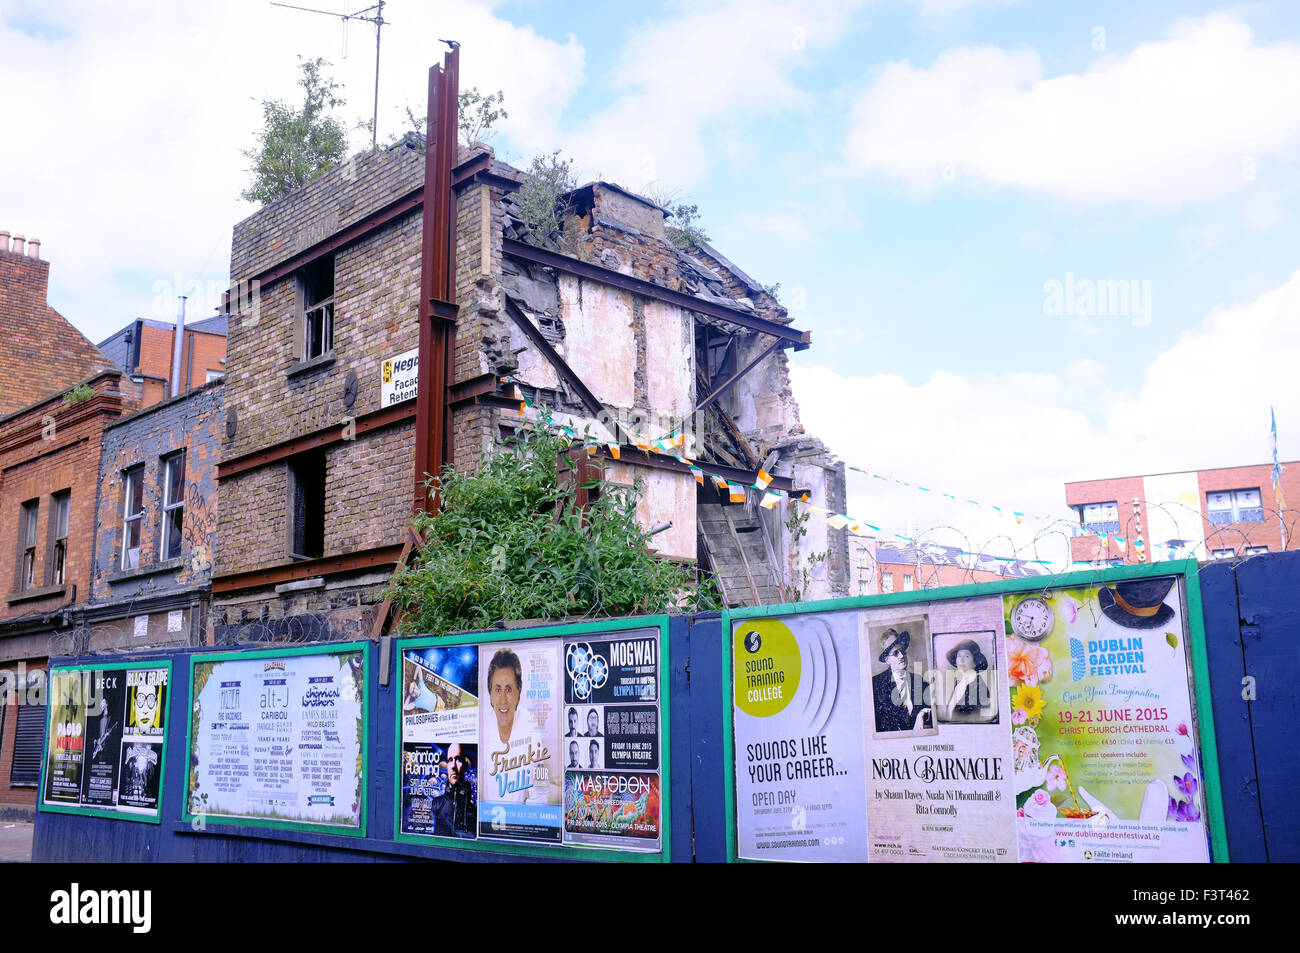 A half demolished building surrounded by fencing in Dublin. - Stock Image